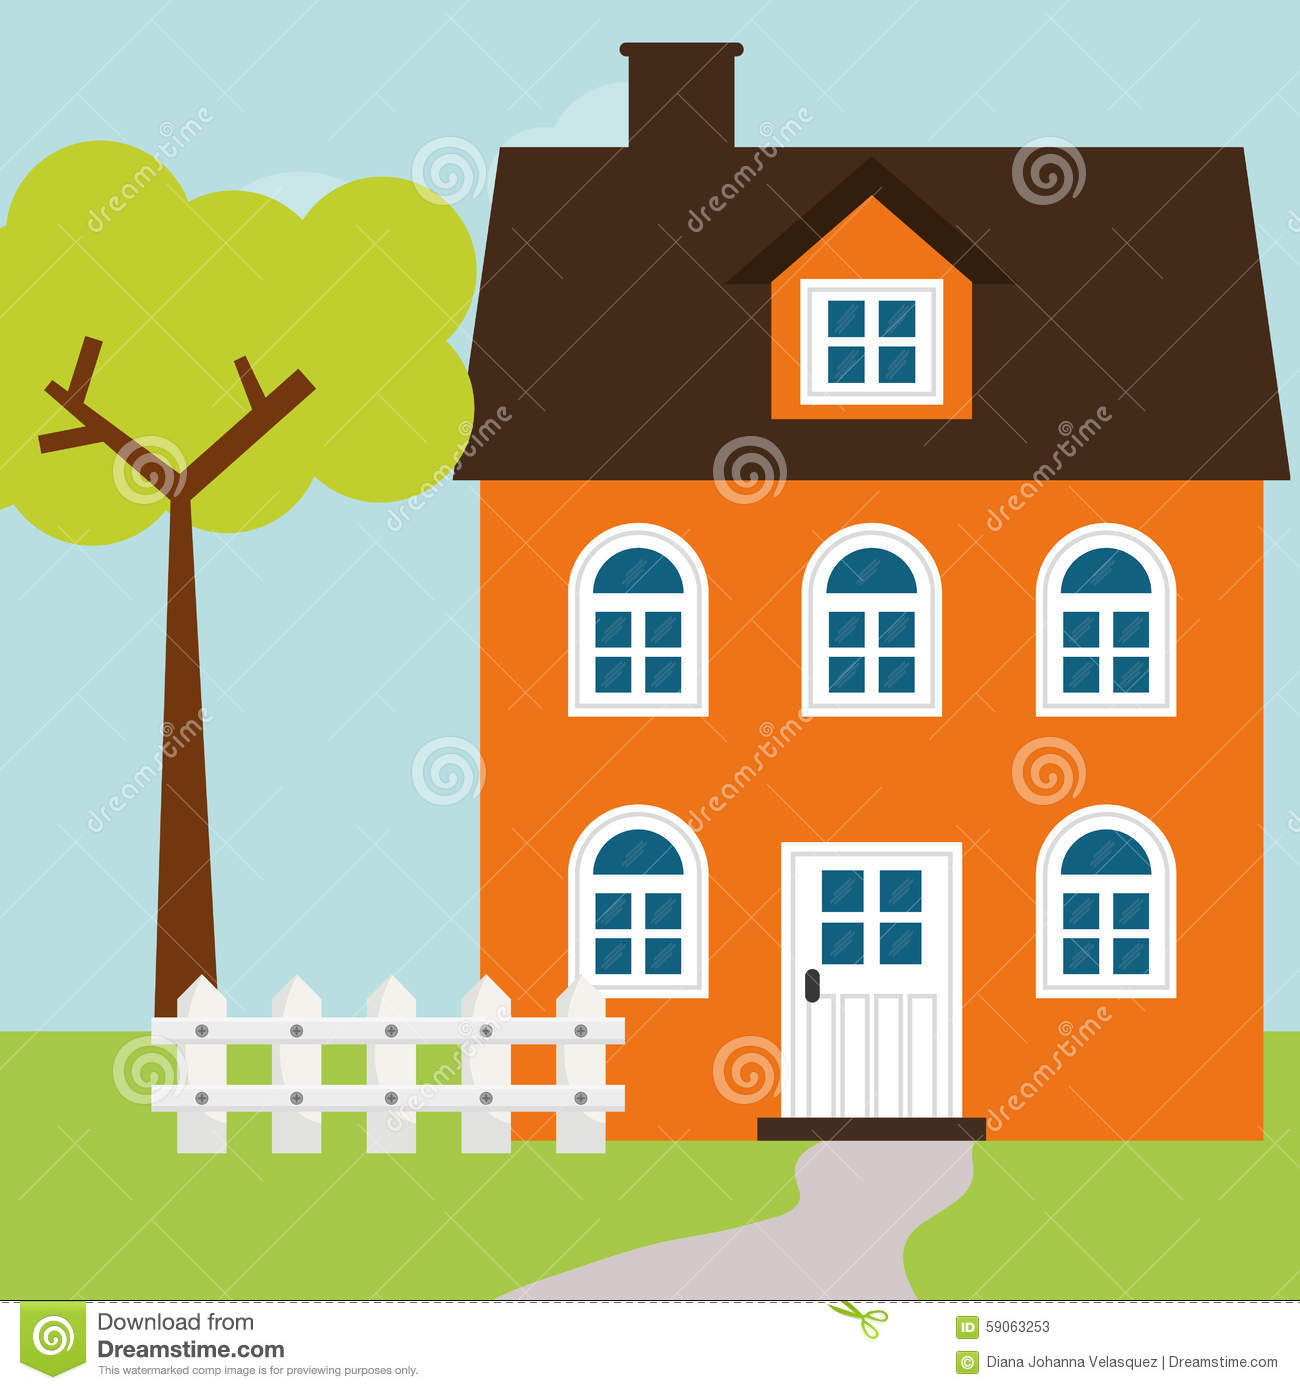 House design stock vector image 59063253 for Digital house design